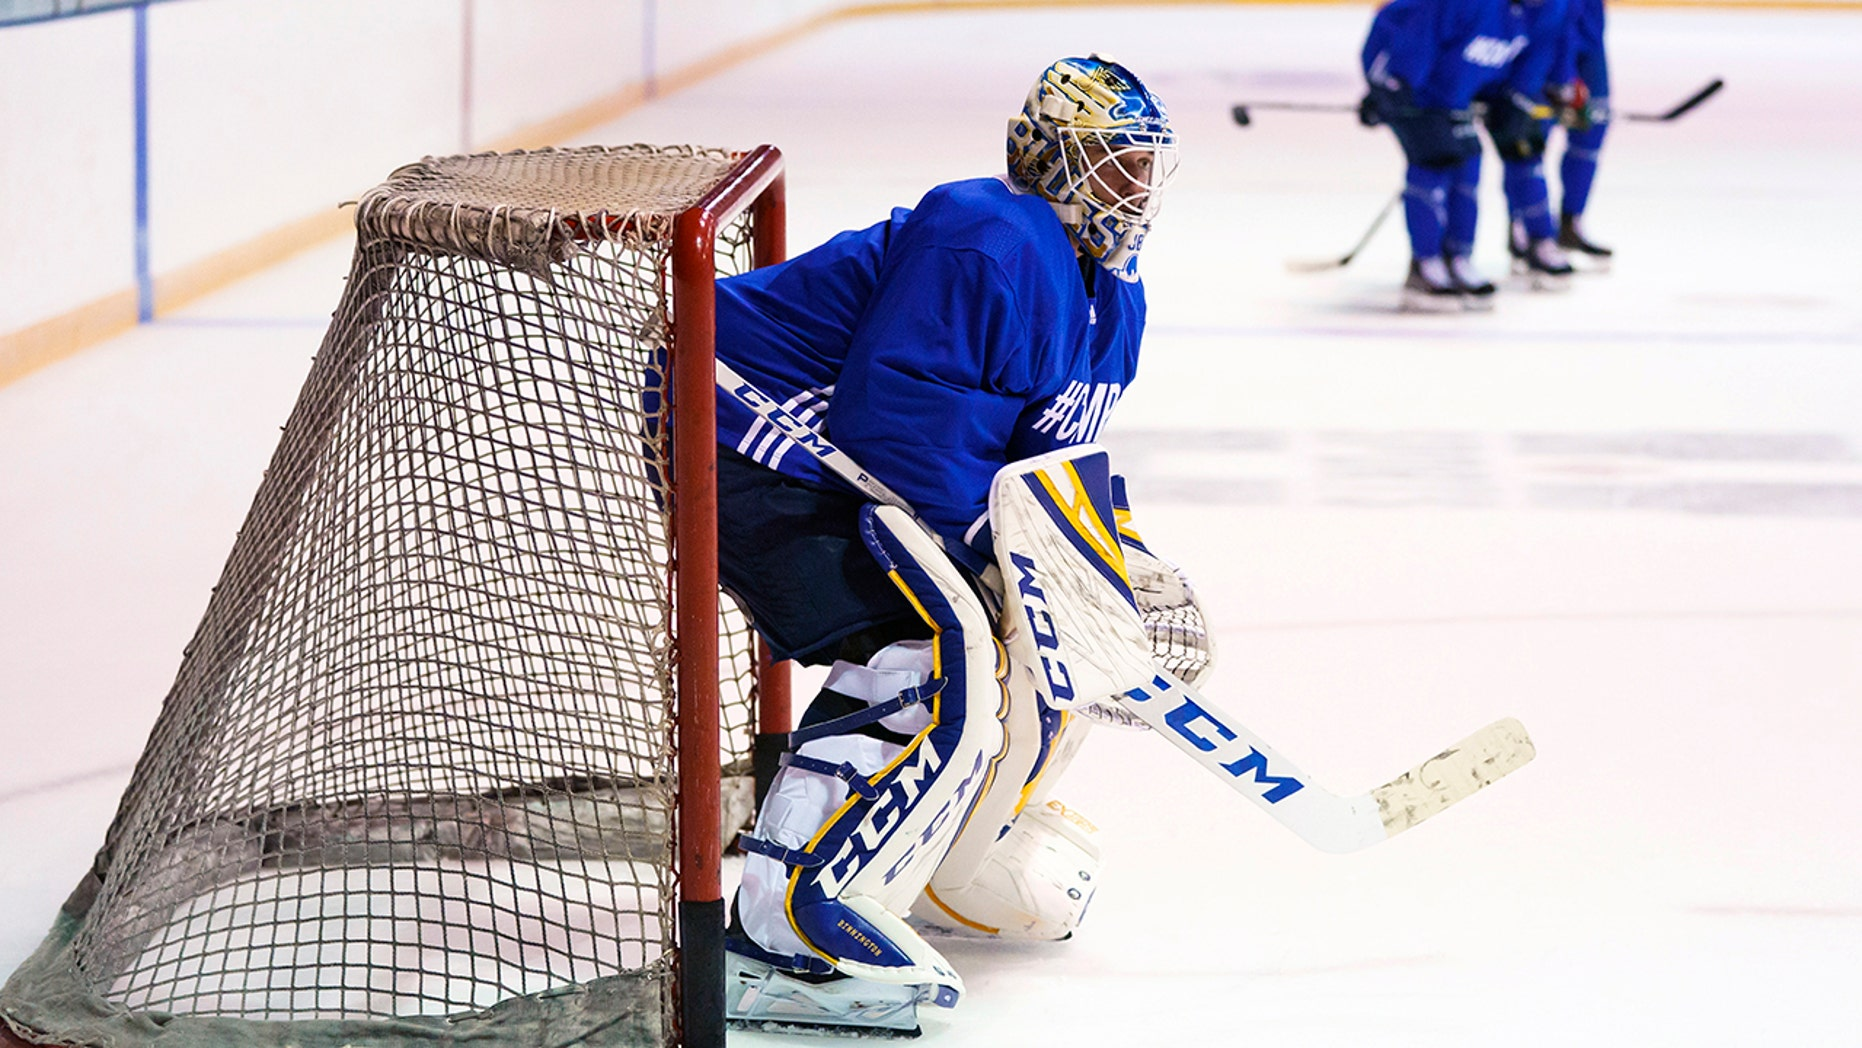 St. Louis Blues goalie Jordan Binnington trains at the 2019 BioSteel Pro Hockey Camp in Toronto, Monday, Aug. 26, 2019. (Mark Blinch/The Canadian Press via AP)